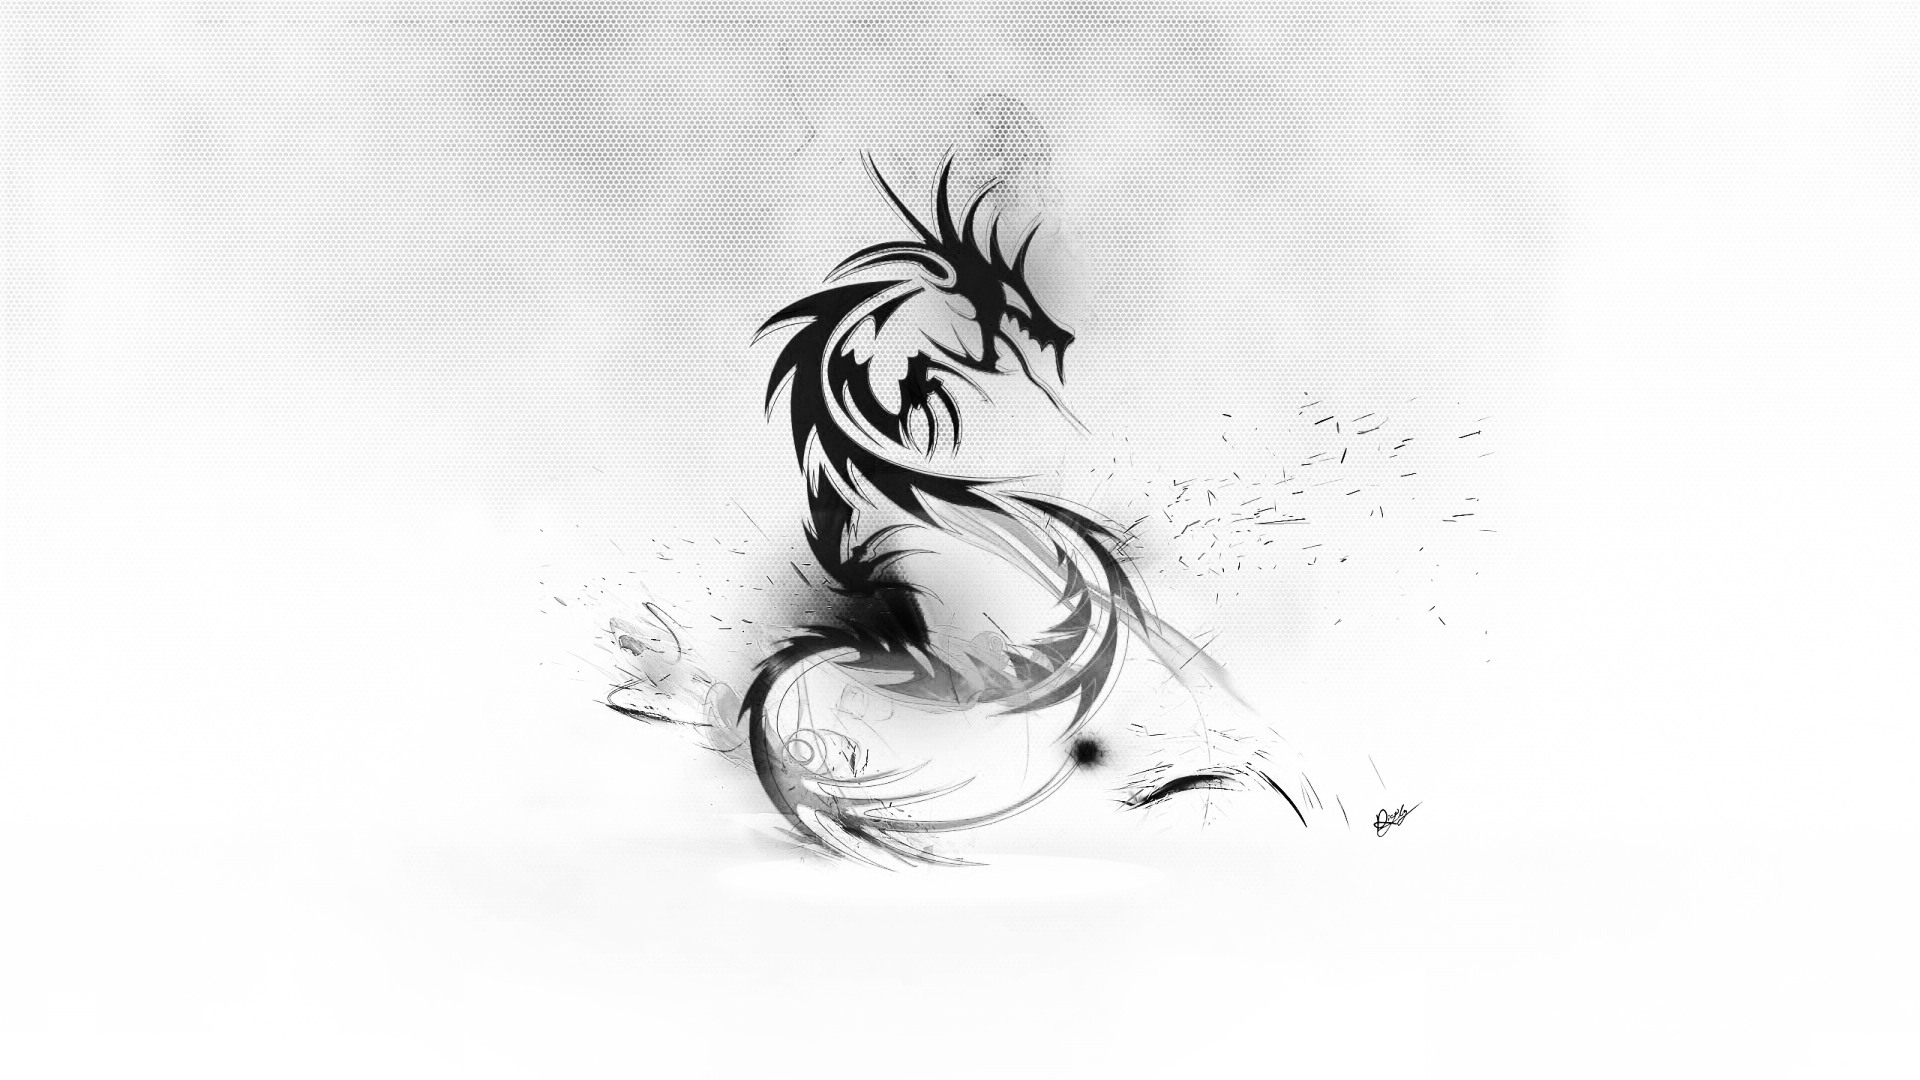 Abstract Dragon Wallpaper BlackWhite by maciekporebski on 1920x1080